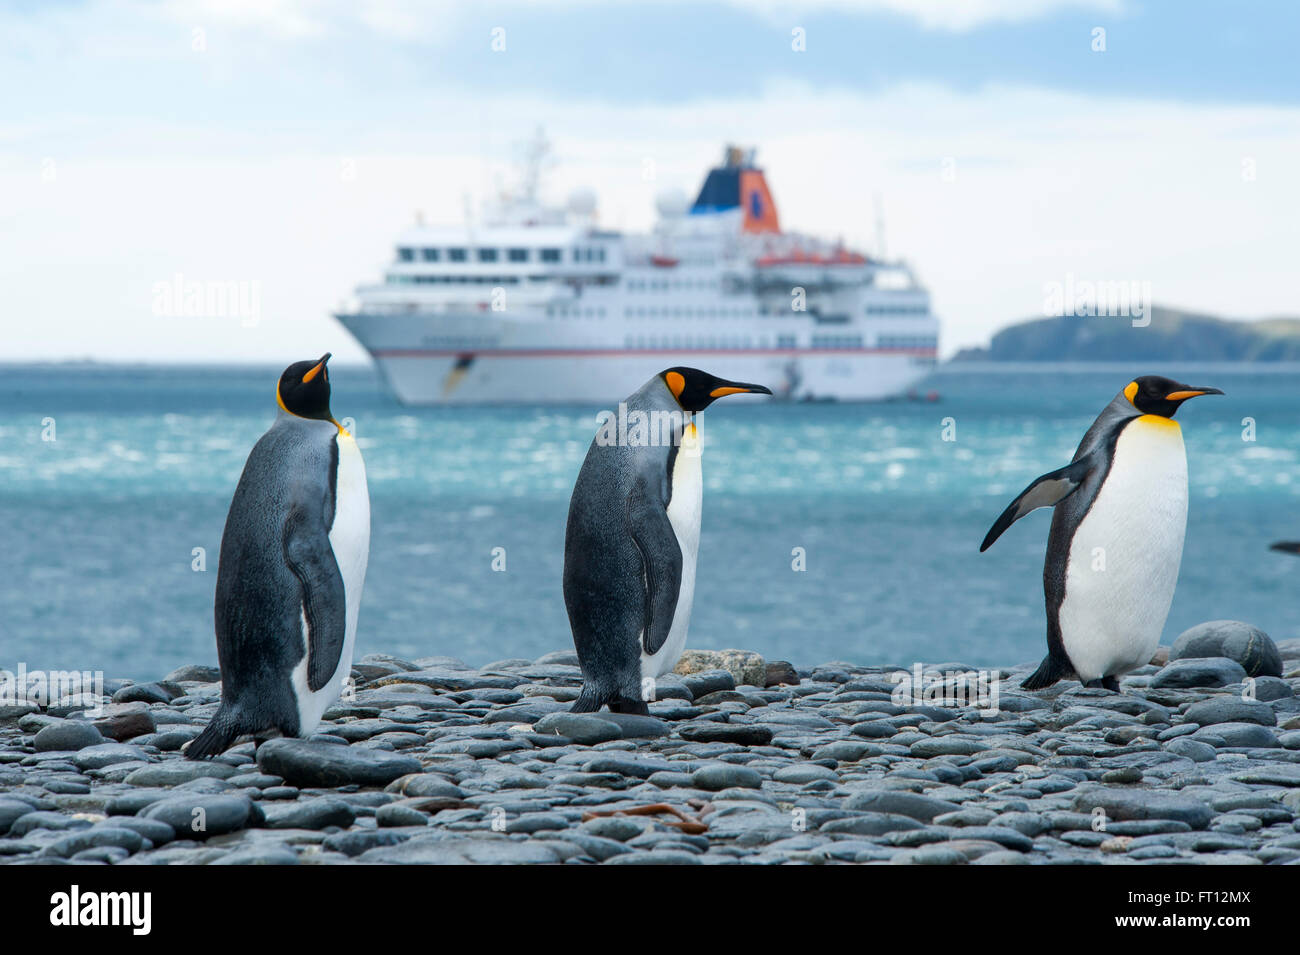 Three King Penguins Aptenodytes patagonicus and the expedition cruise ship MS Hanseatic Hapag-Lloyd Cruises, Salisbury - Stock Image